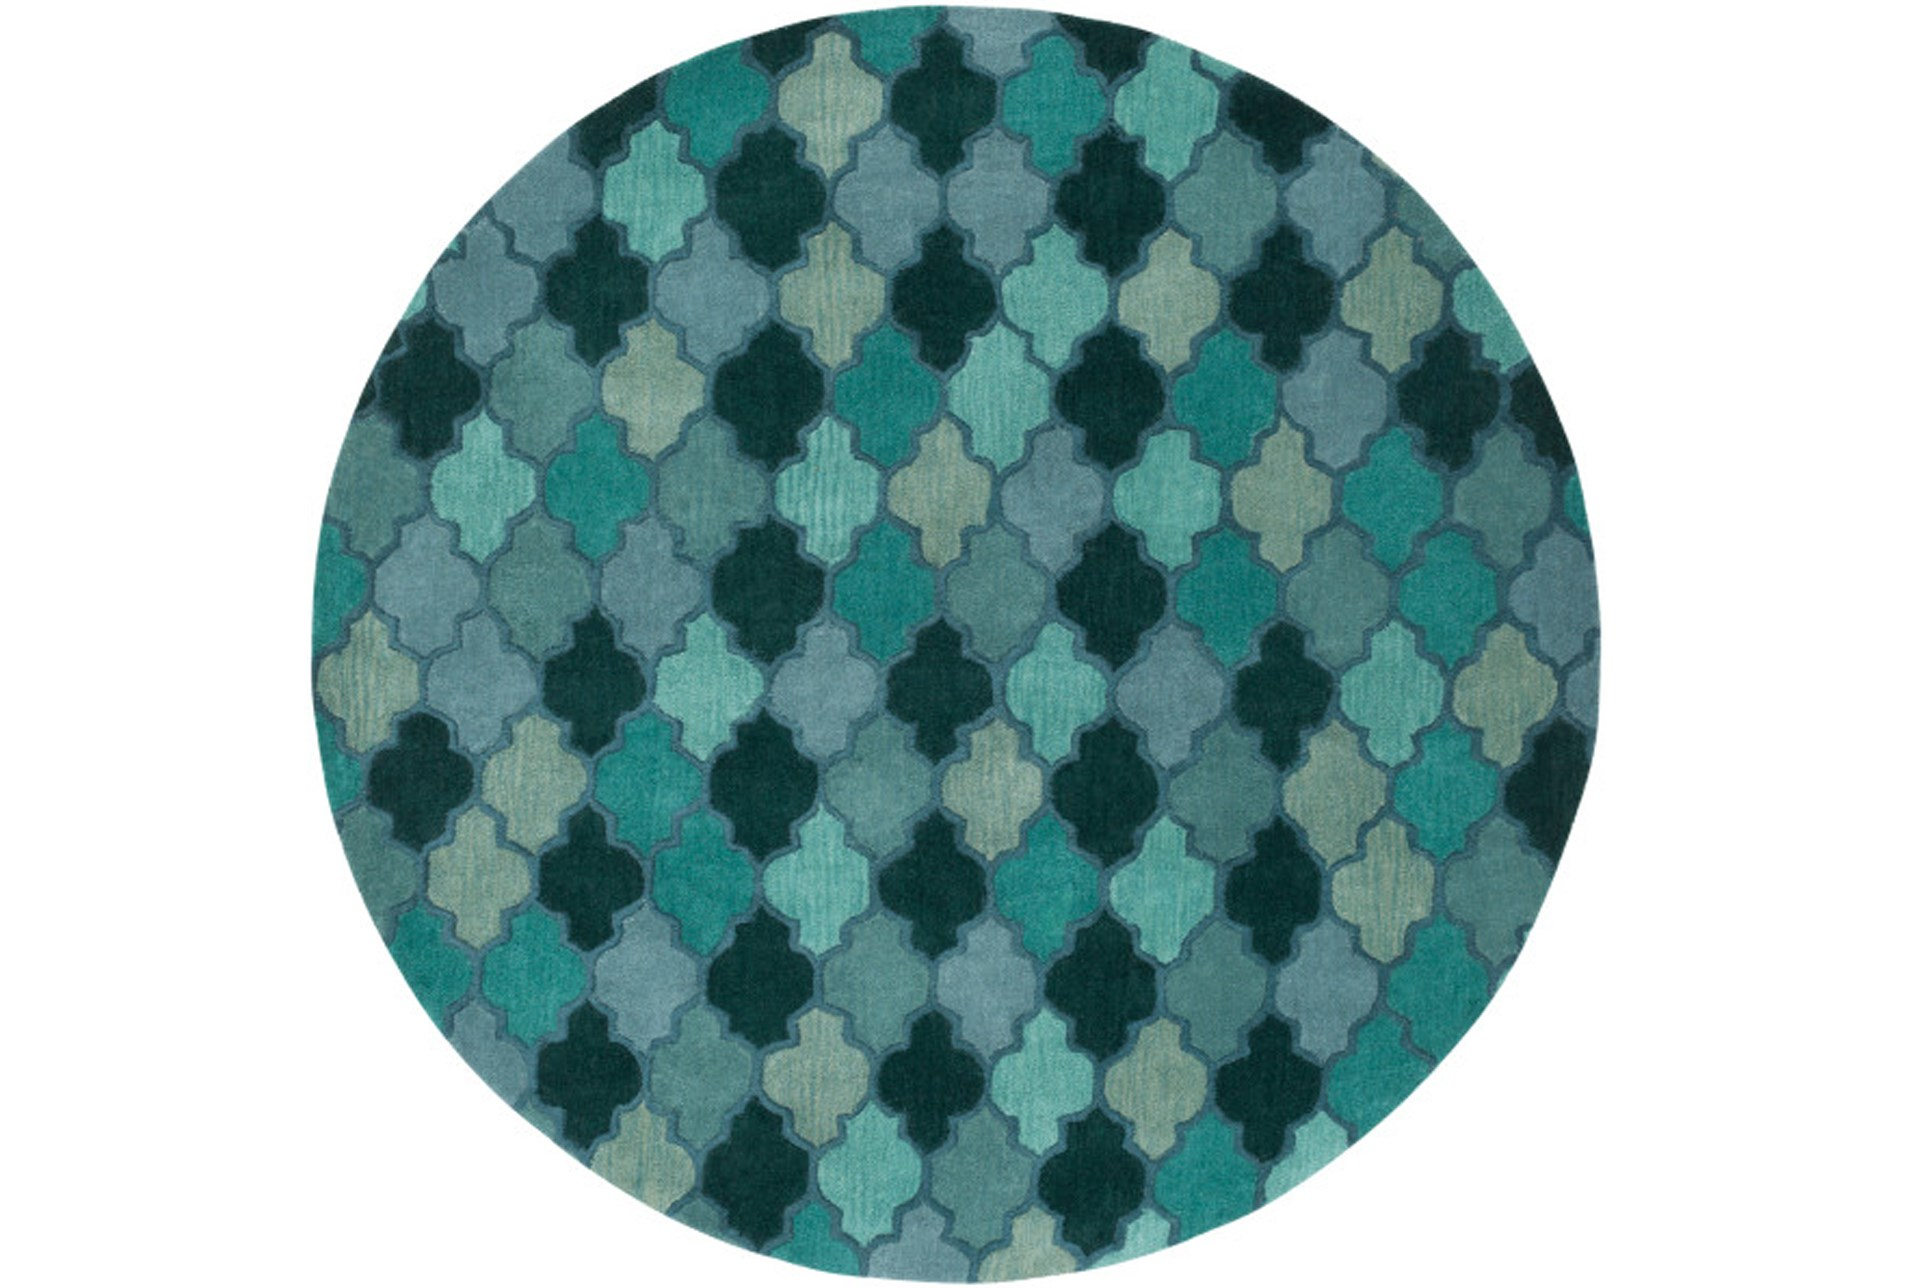 96 Inch Round Rug Einstein Teal Qty 1 Has Been Successfully Added To Your Cart